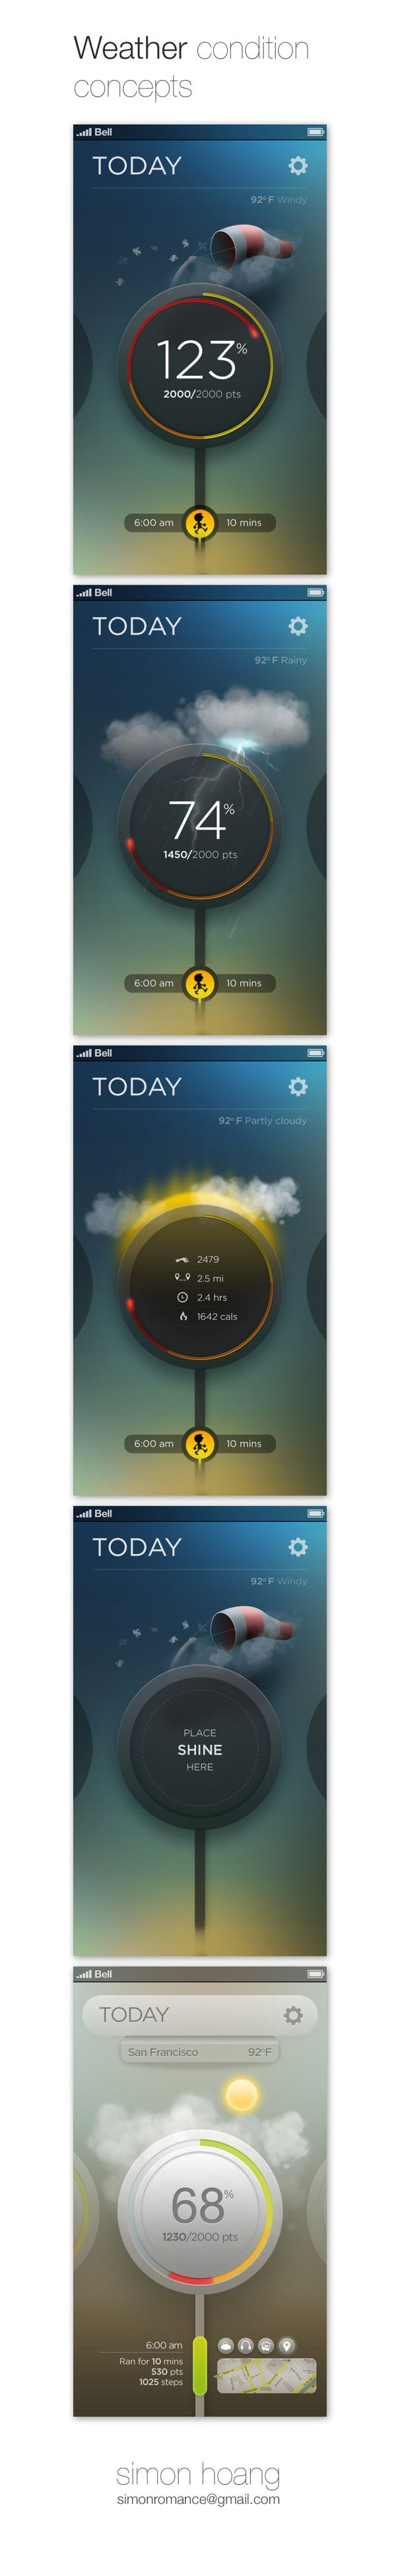 Misfit Shine: Weather conditions by Simon Hoang, via Behance *** #app #gui #ui #behance